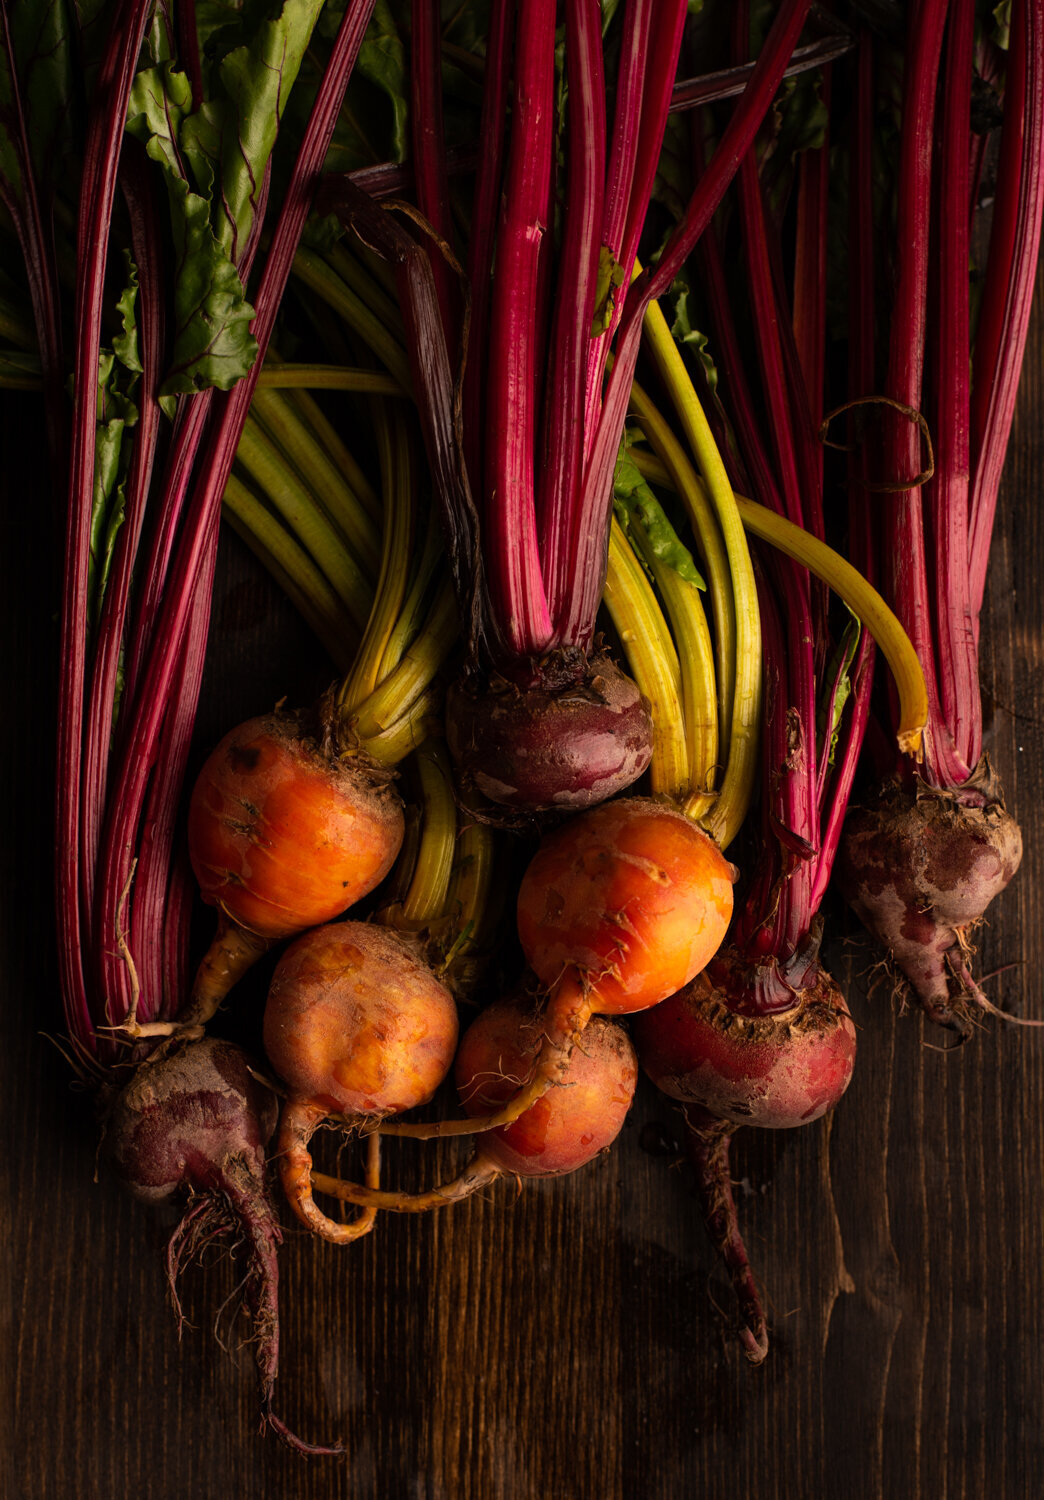 rustic beets from specialty produce